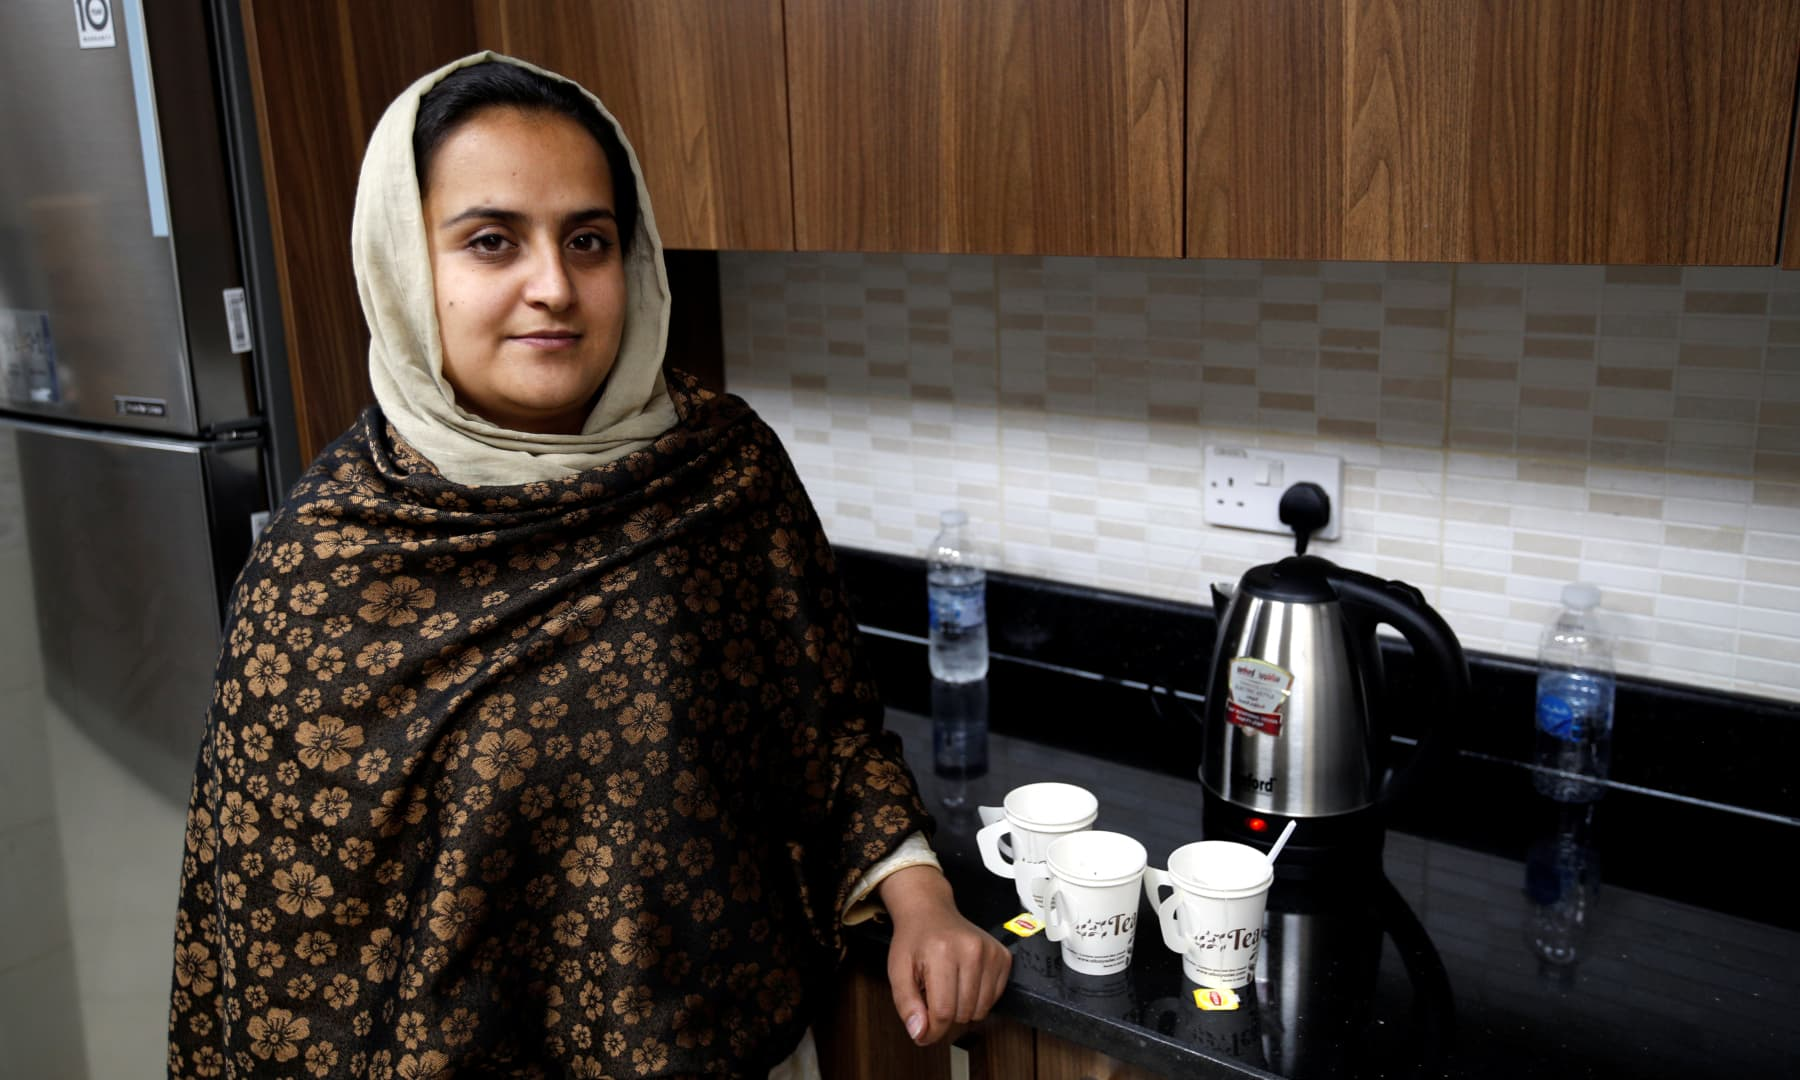 Afghan news anchor Beheshta Arghand poses for a photo as she makes her afternoon tea at a temporary residence compound in Doha, Qatar on September 1, 2021. — Reuters